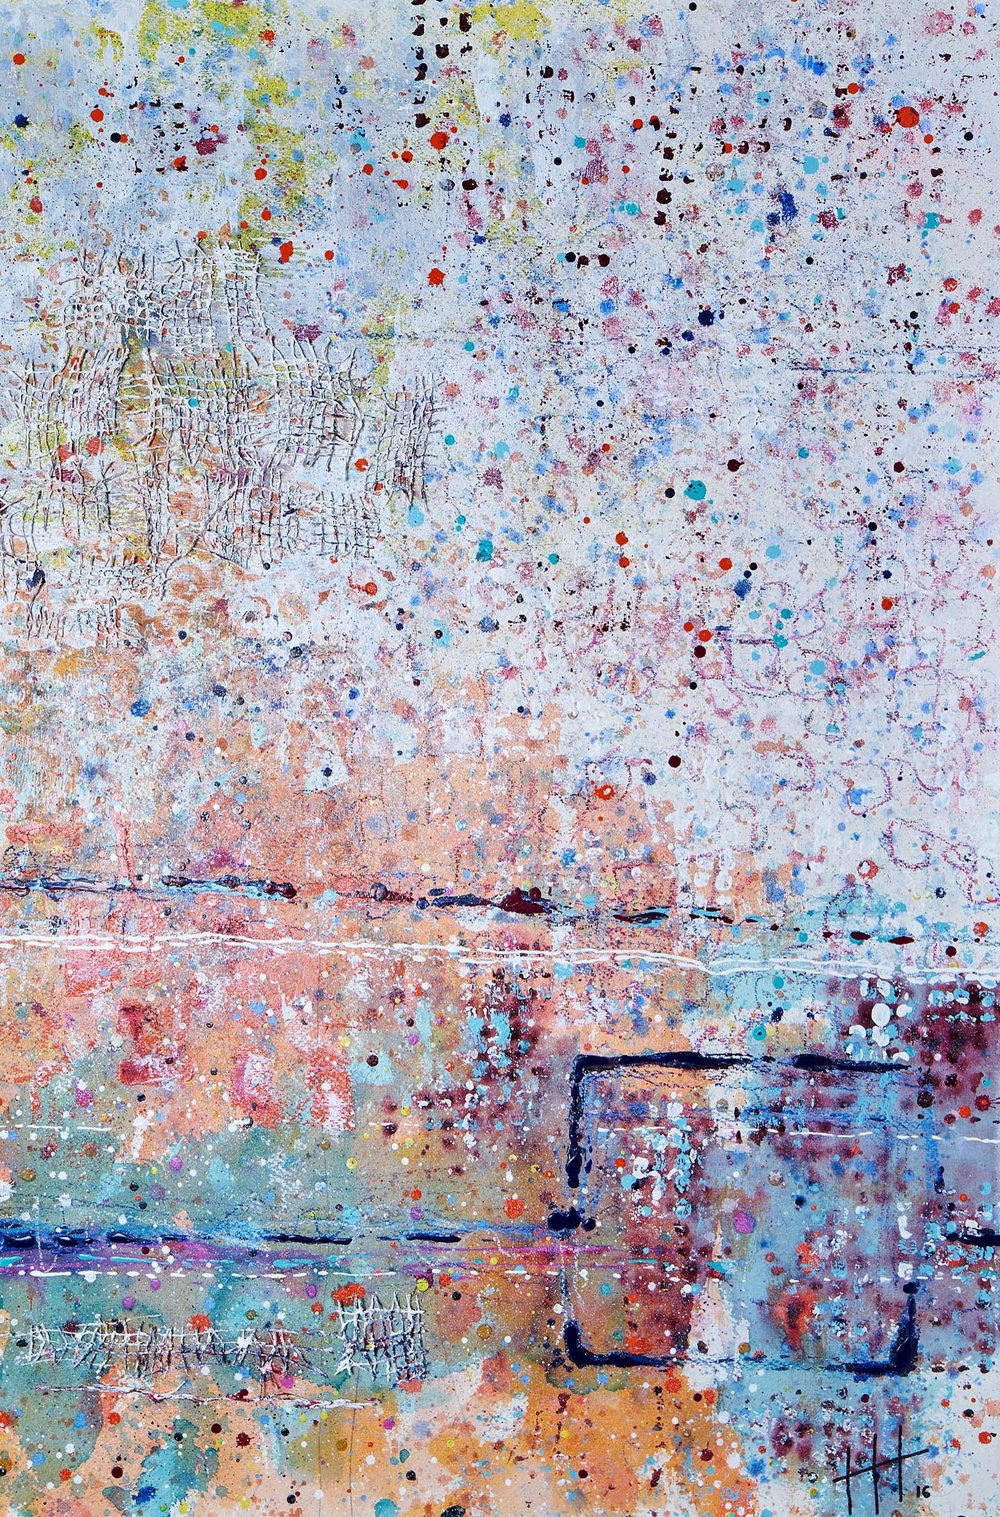 'The Slipway' Acrylic & Mixed Media / 129cm x 93cm (framed) SOLD